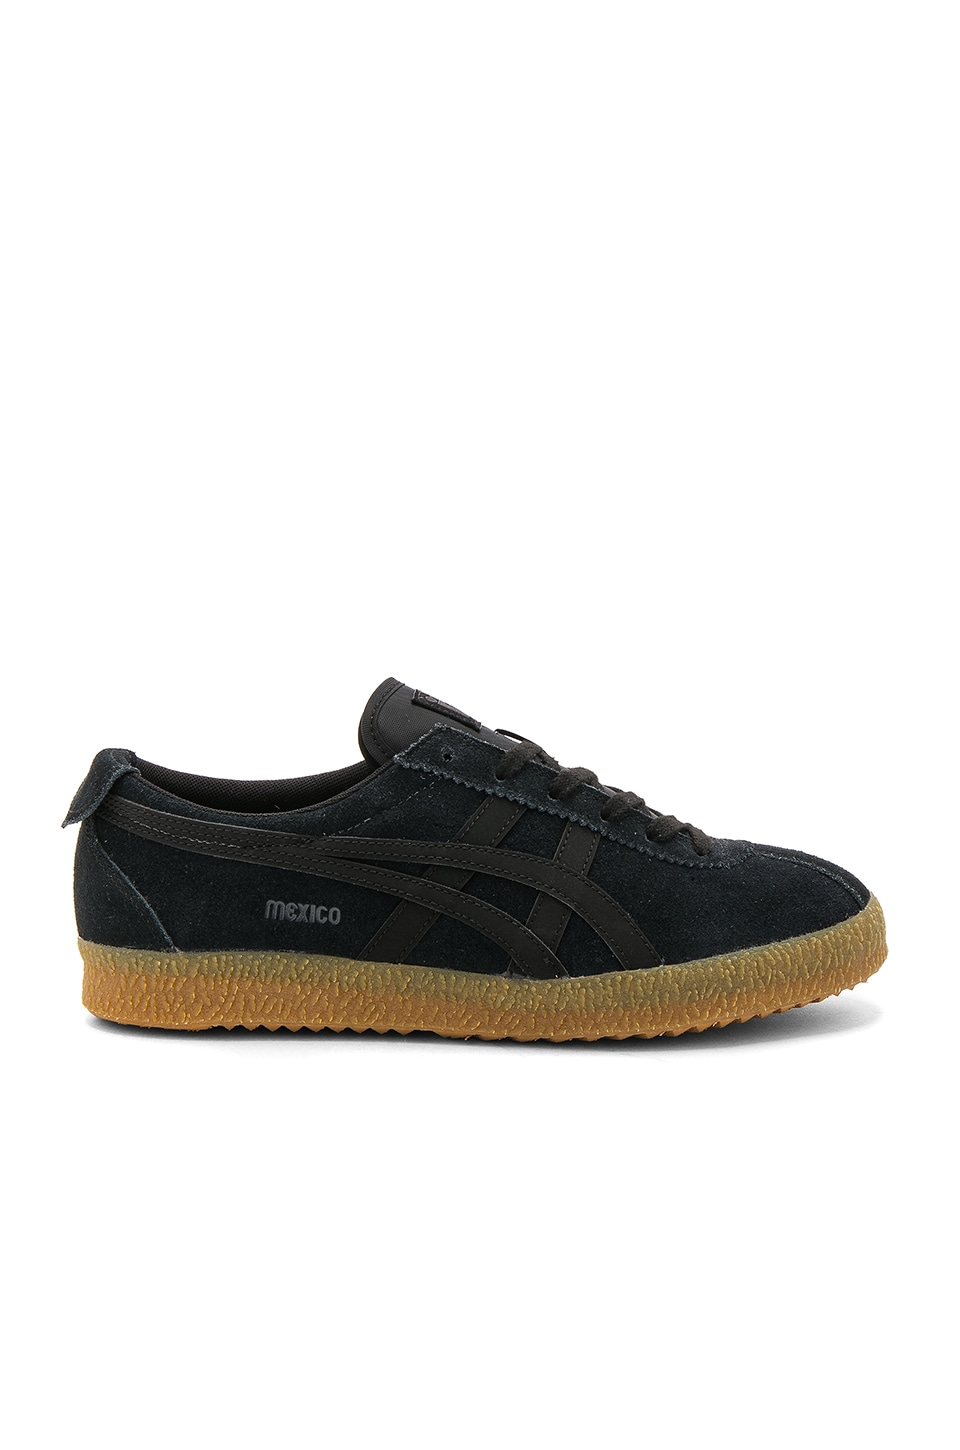 Onitsuka Tiger Mexico Delegation in Black & Dark Grey